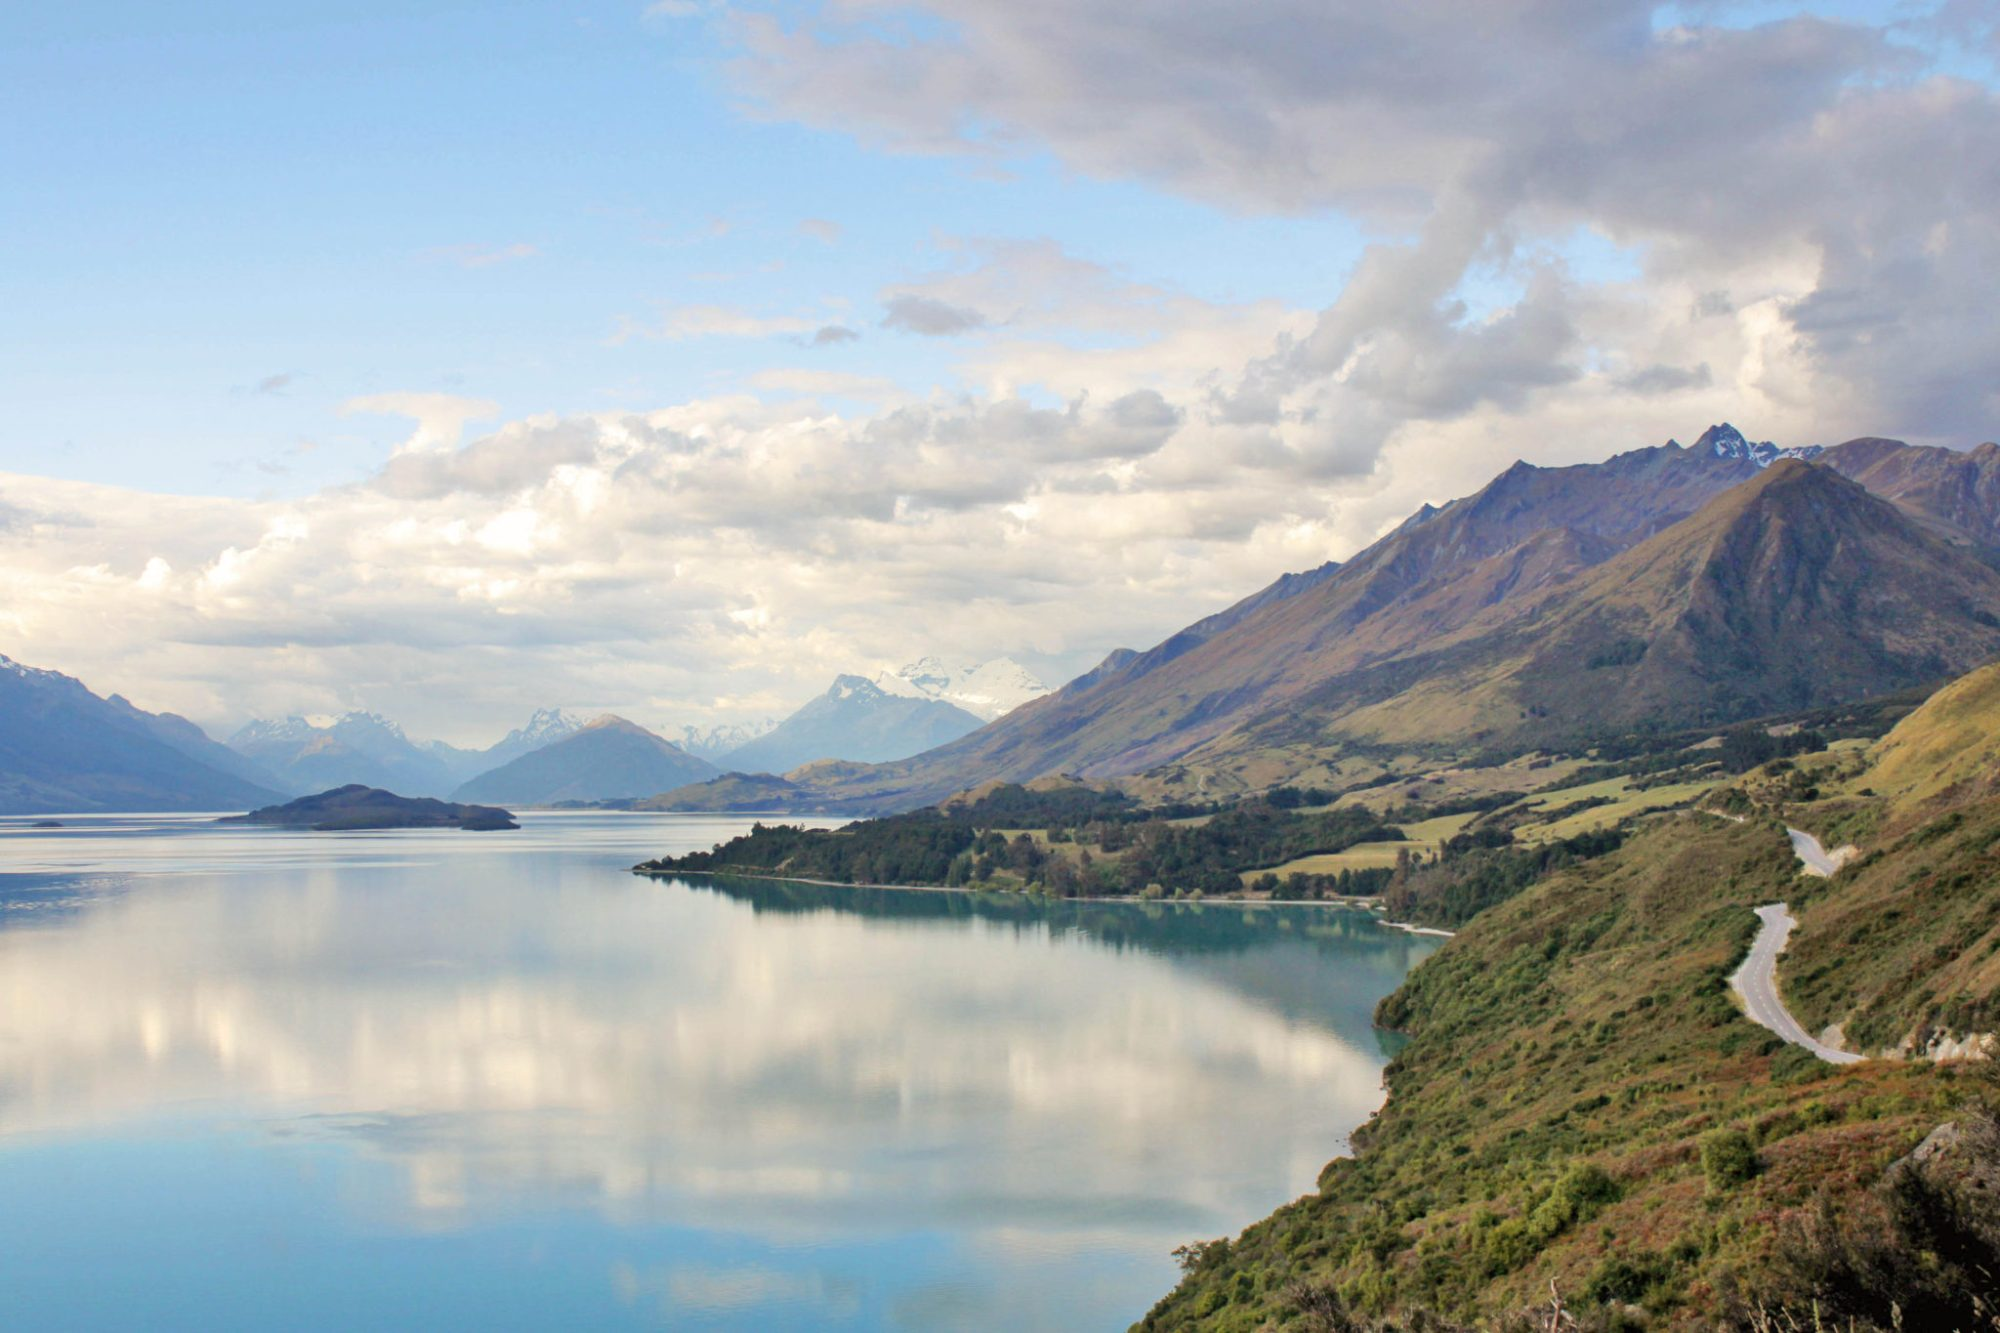 The drive to Glenorchy is one of the most beautiful drives in New Zealand 8 Unforgettable things to do in Queenstown New Zealand   Glenorchy #glenorchy #newzealand #queenstown #simplywander